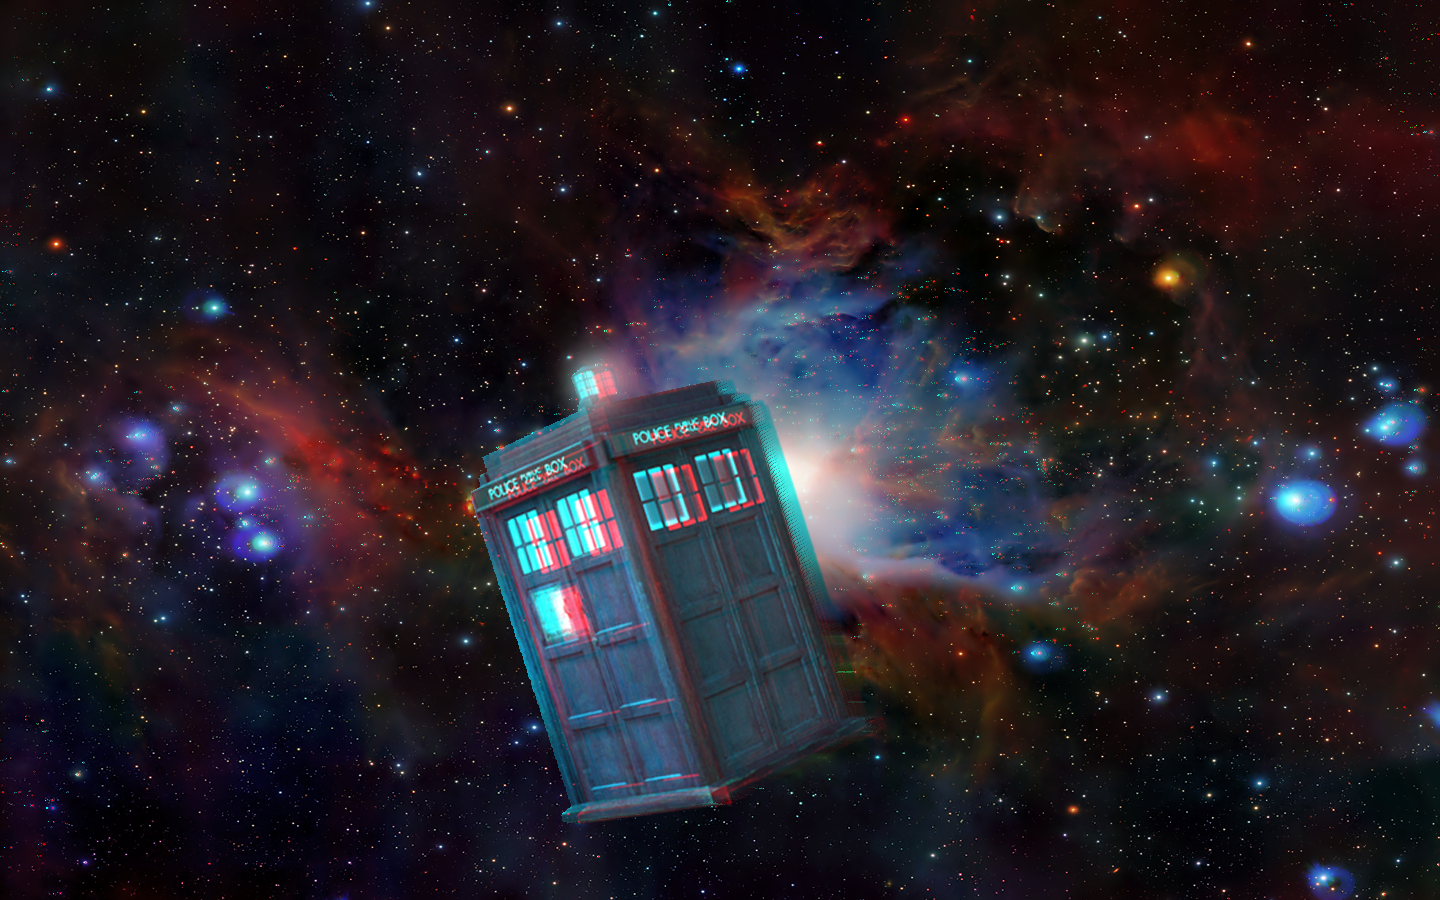 GALLERY: Dr Who Tardis In Space